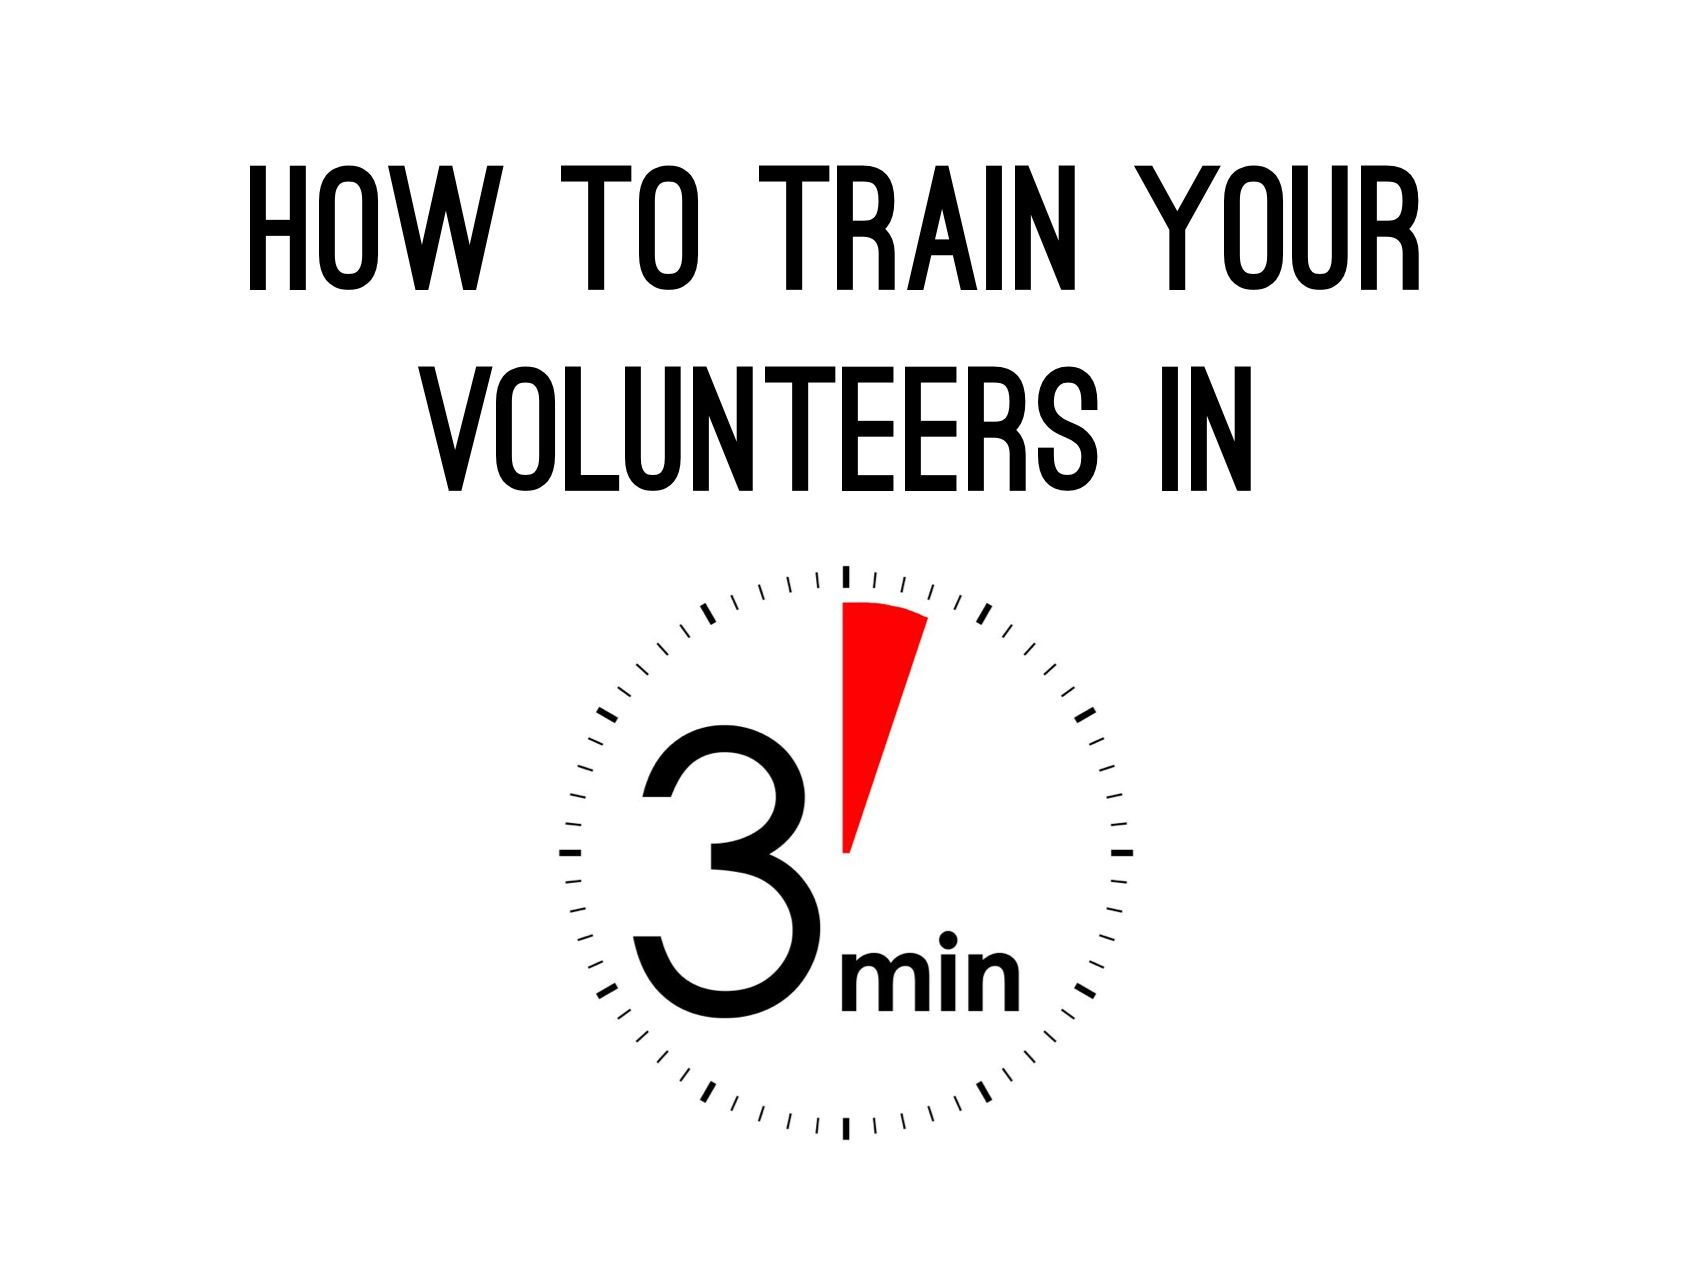 How to Train Your Volunteers in 3 MInutes ~ RELEVANT